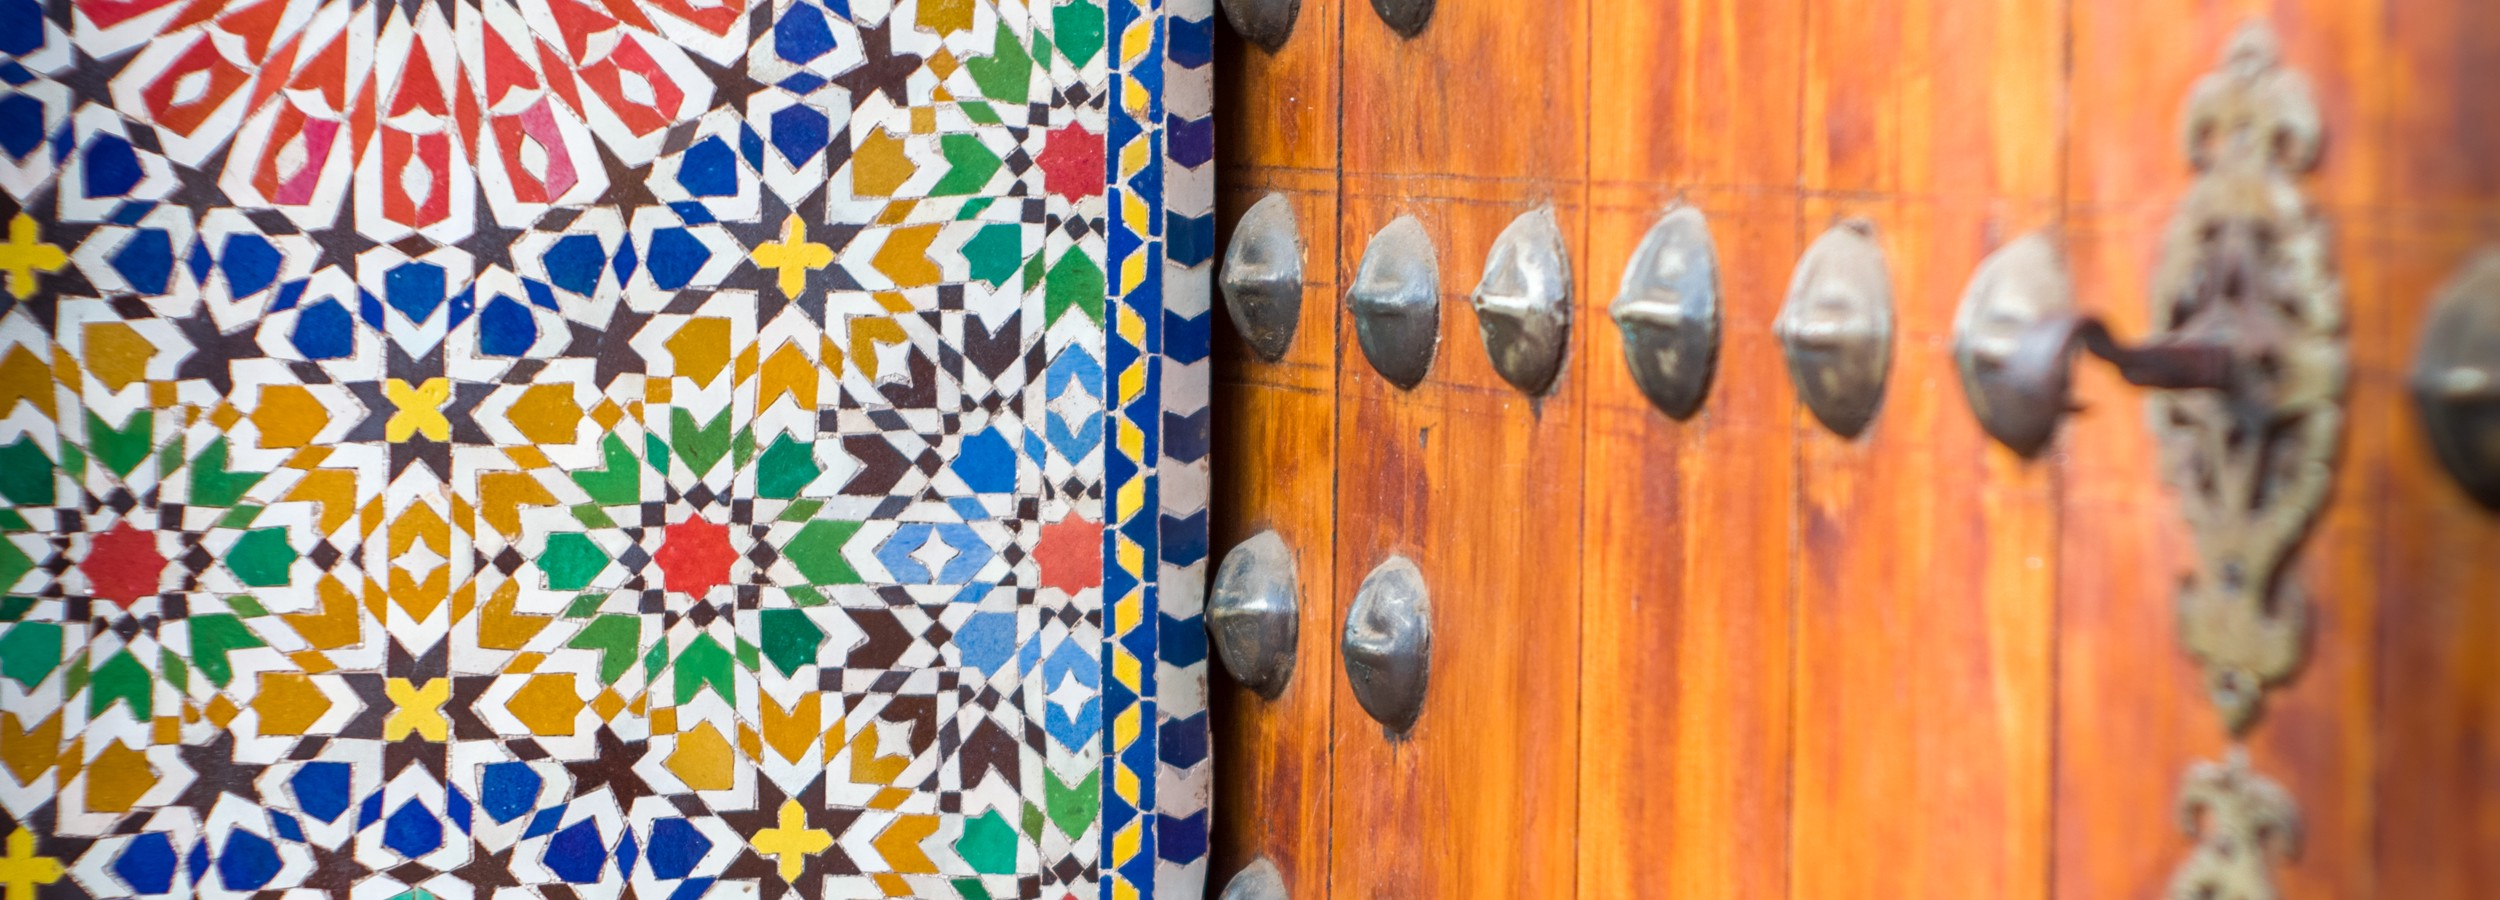 Colorful mosaic at a door in Marrakech.